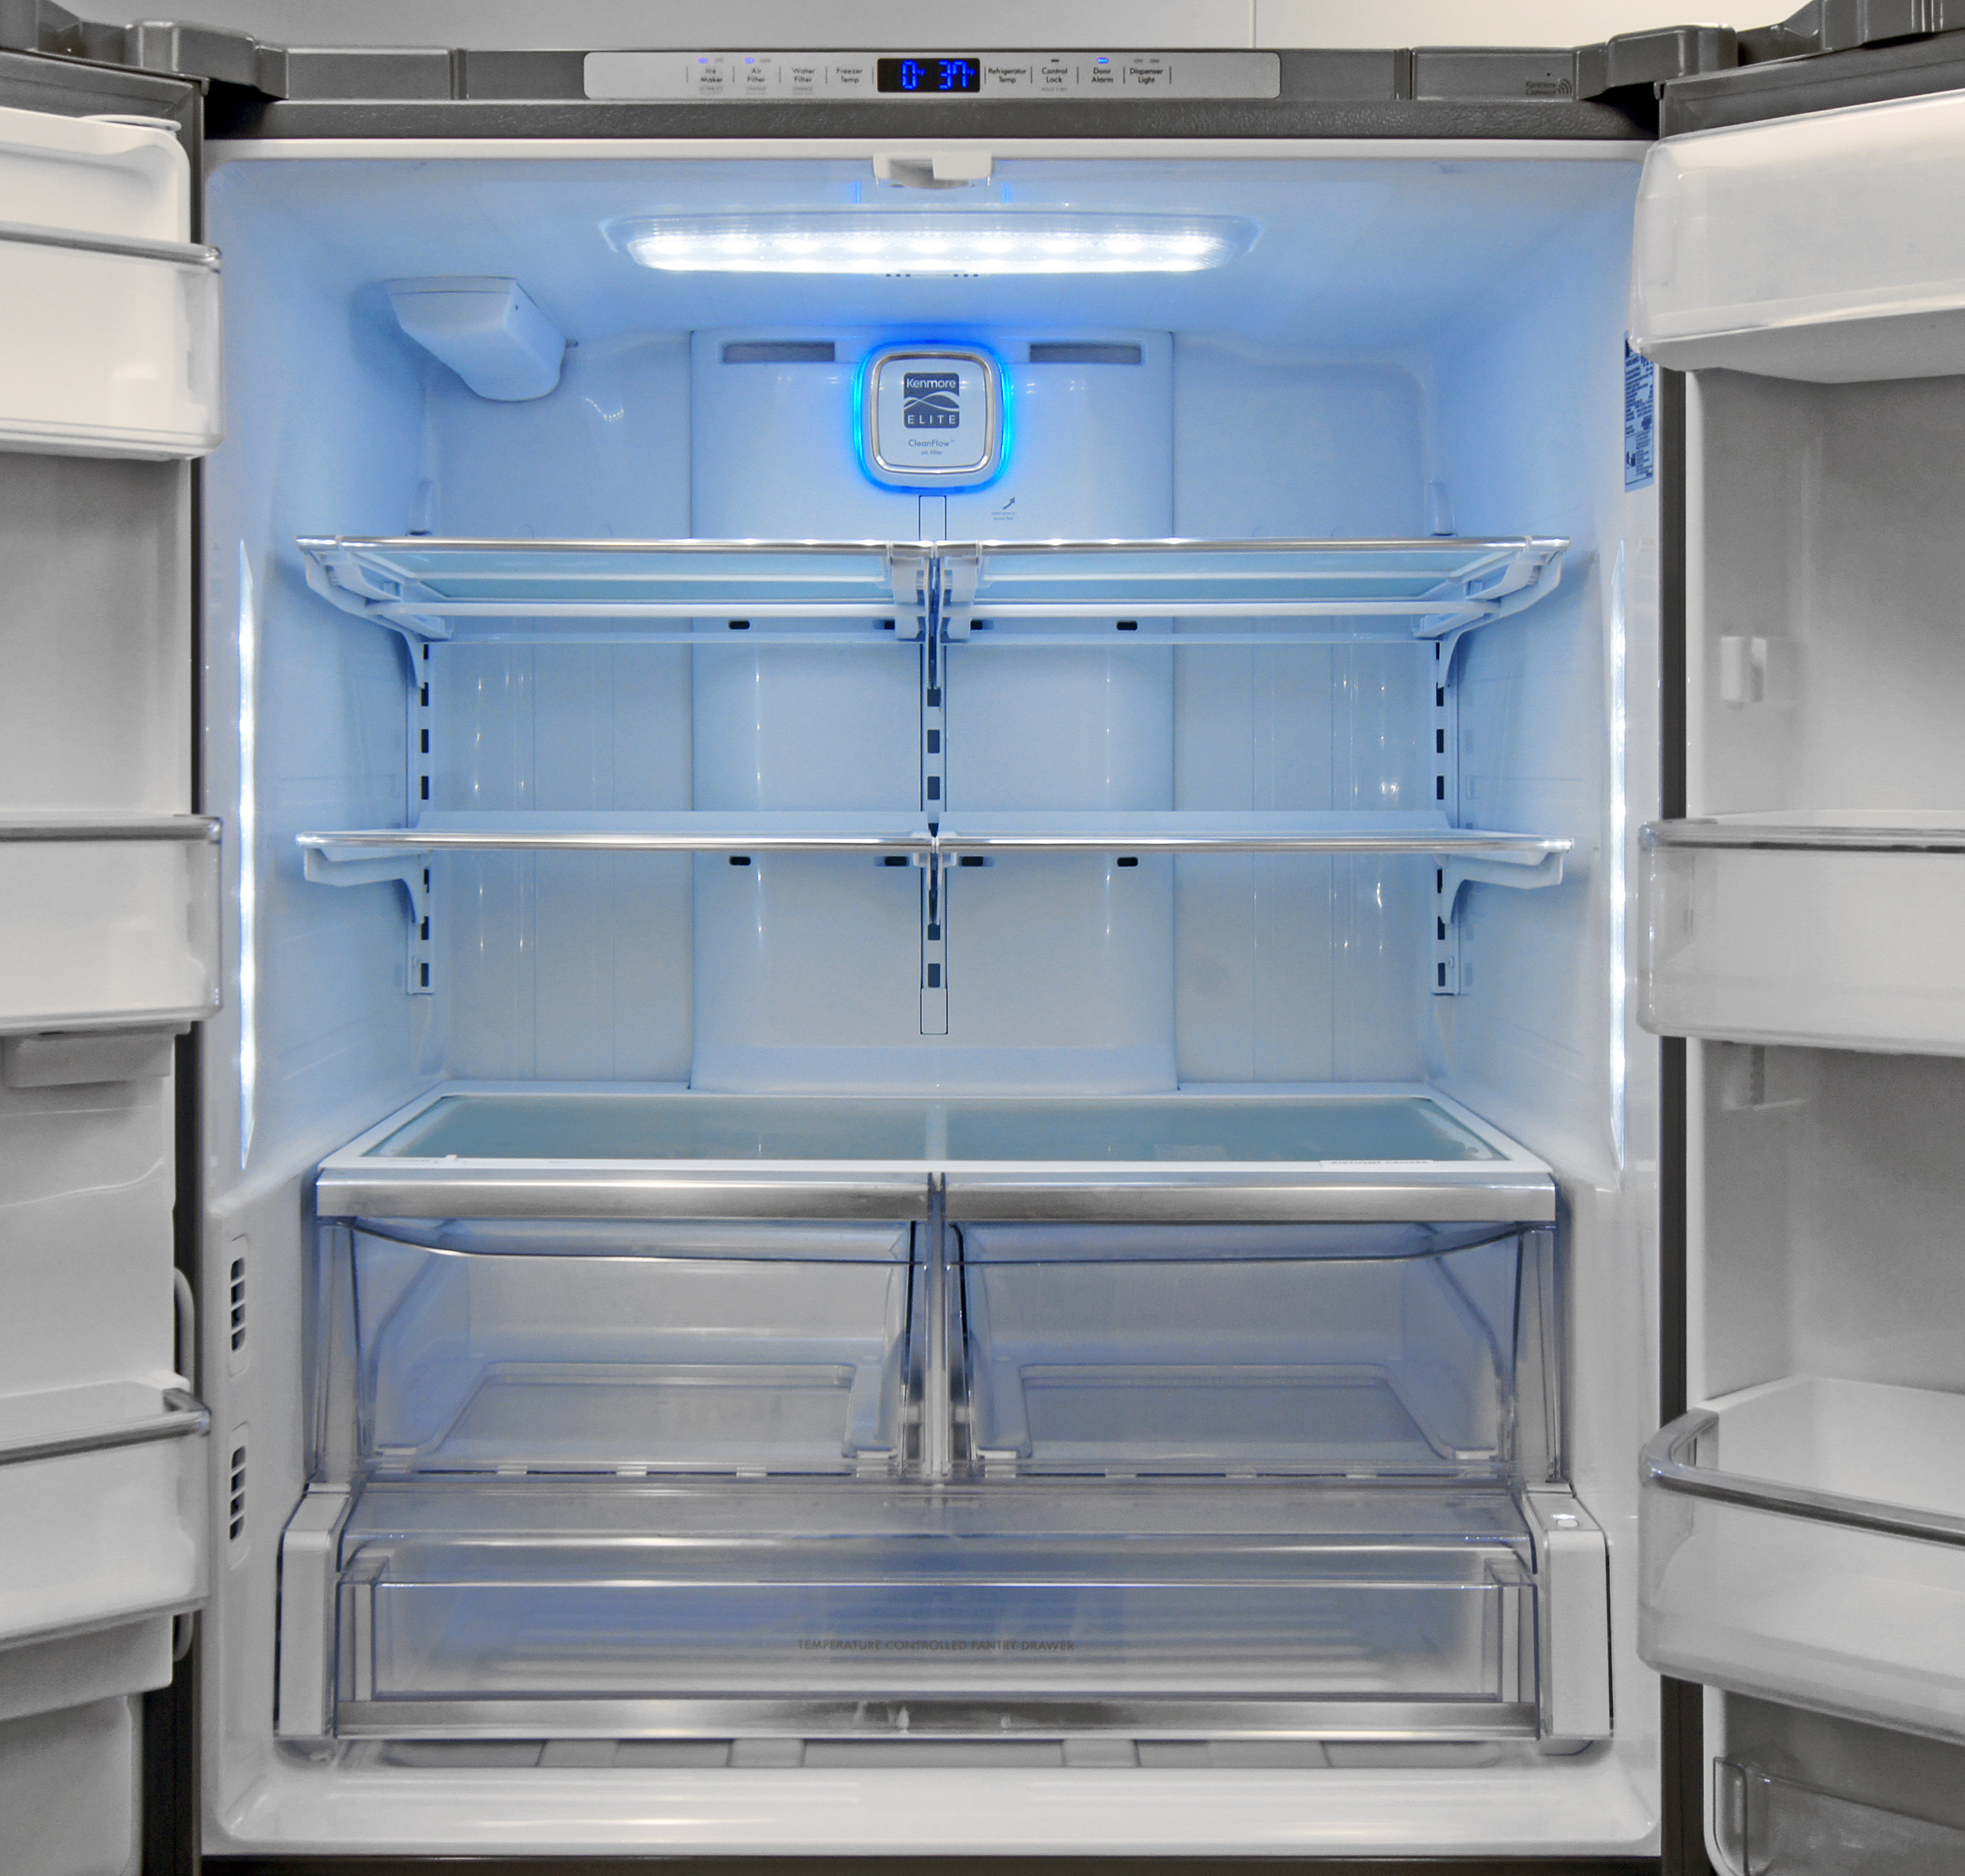 LED illumination and predominantly white plastic give the Kenmore Elite 74025 a bright, clean look.